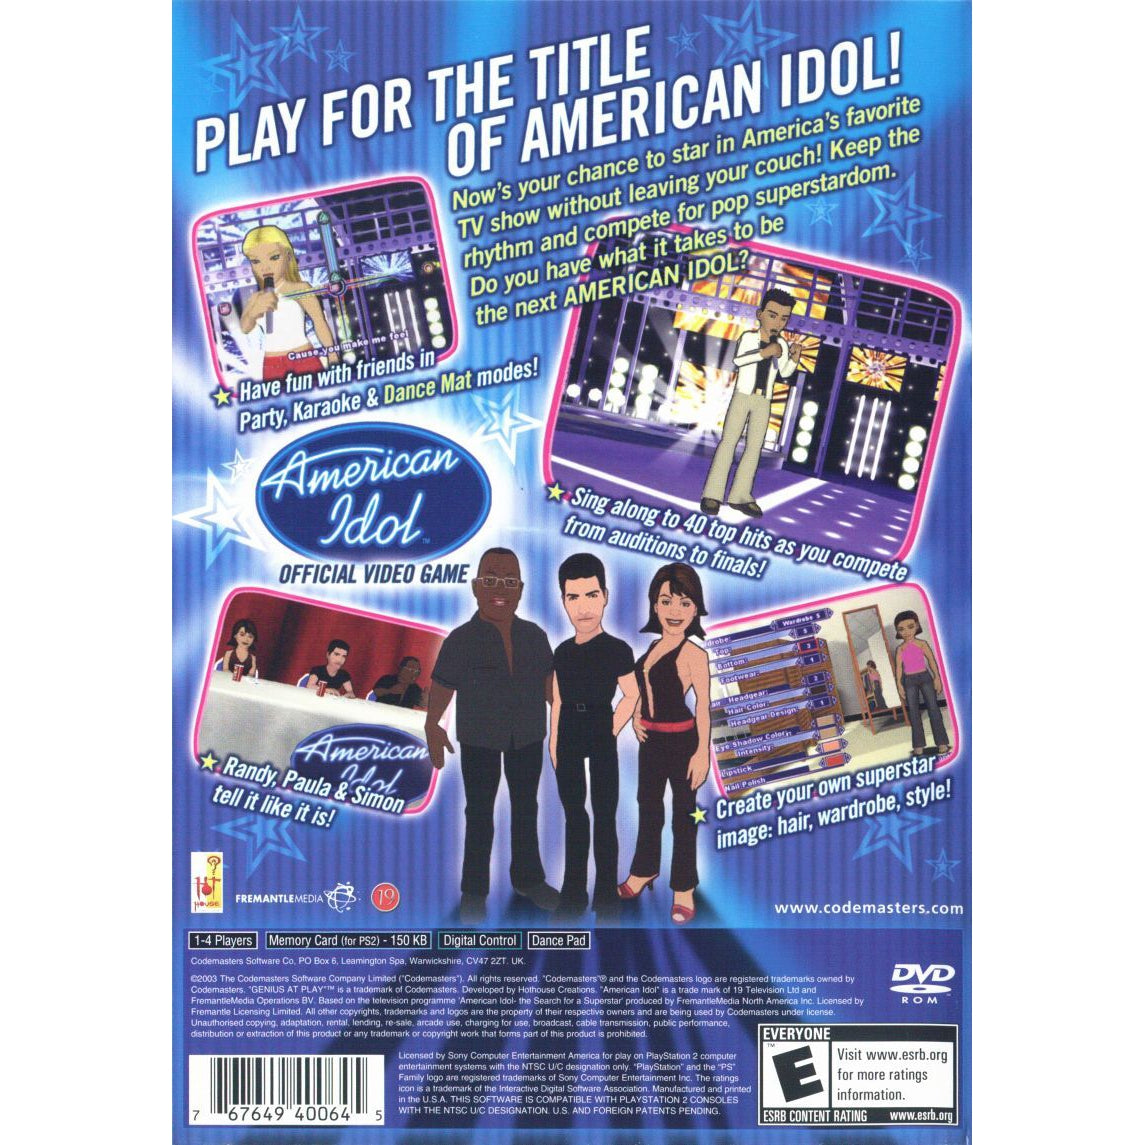 American Idol - PlayStation 2 (PS2) Game Complete - YourGamingShop.com - Buy, Sell, Trade Video Games Online. 120 Day Warranty. Satisfaction Guaranteed.